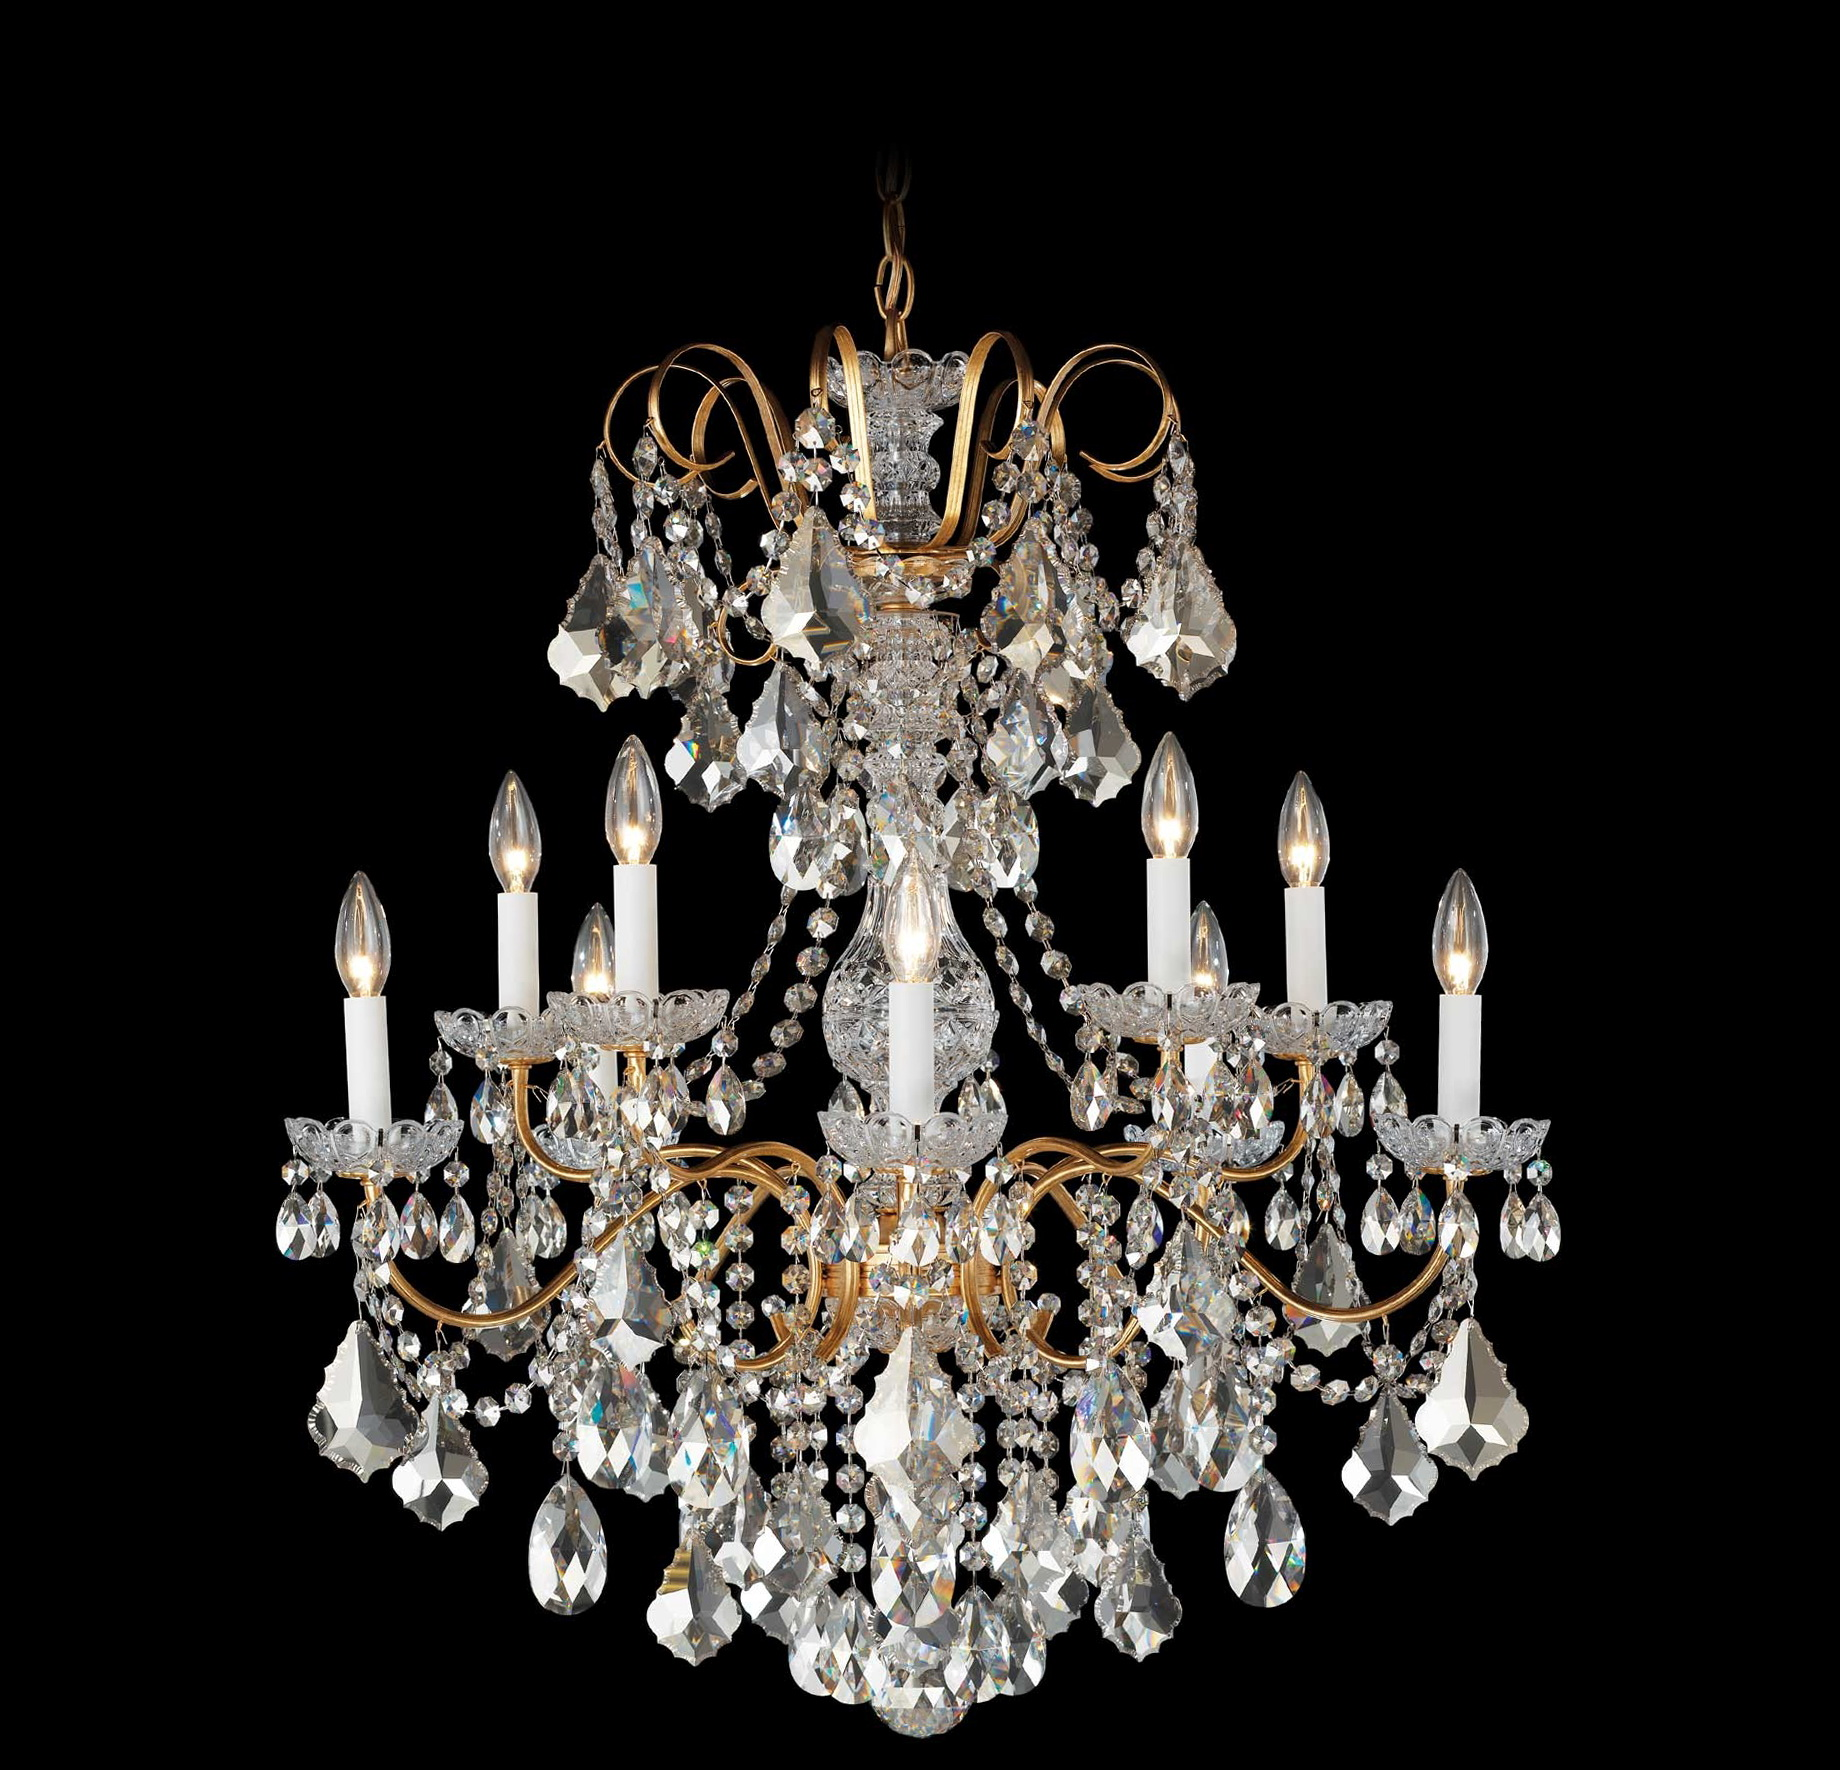 Crystal chandelier parts ebay home design ideas crystal chandelier parts ebay aloadofball Image collections